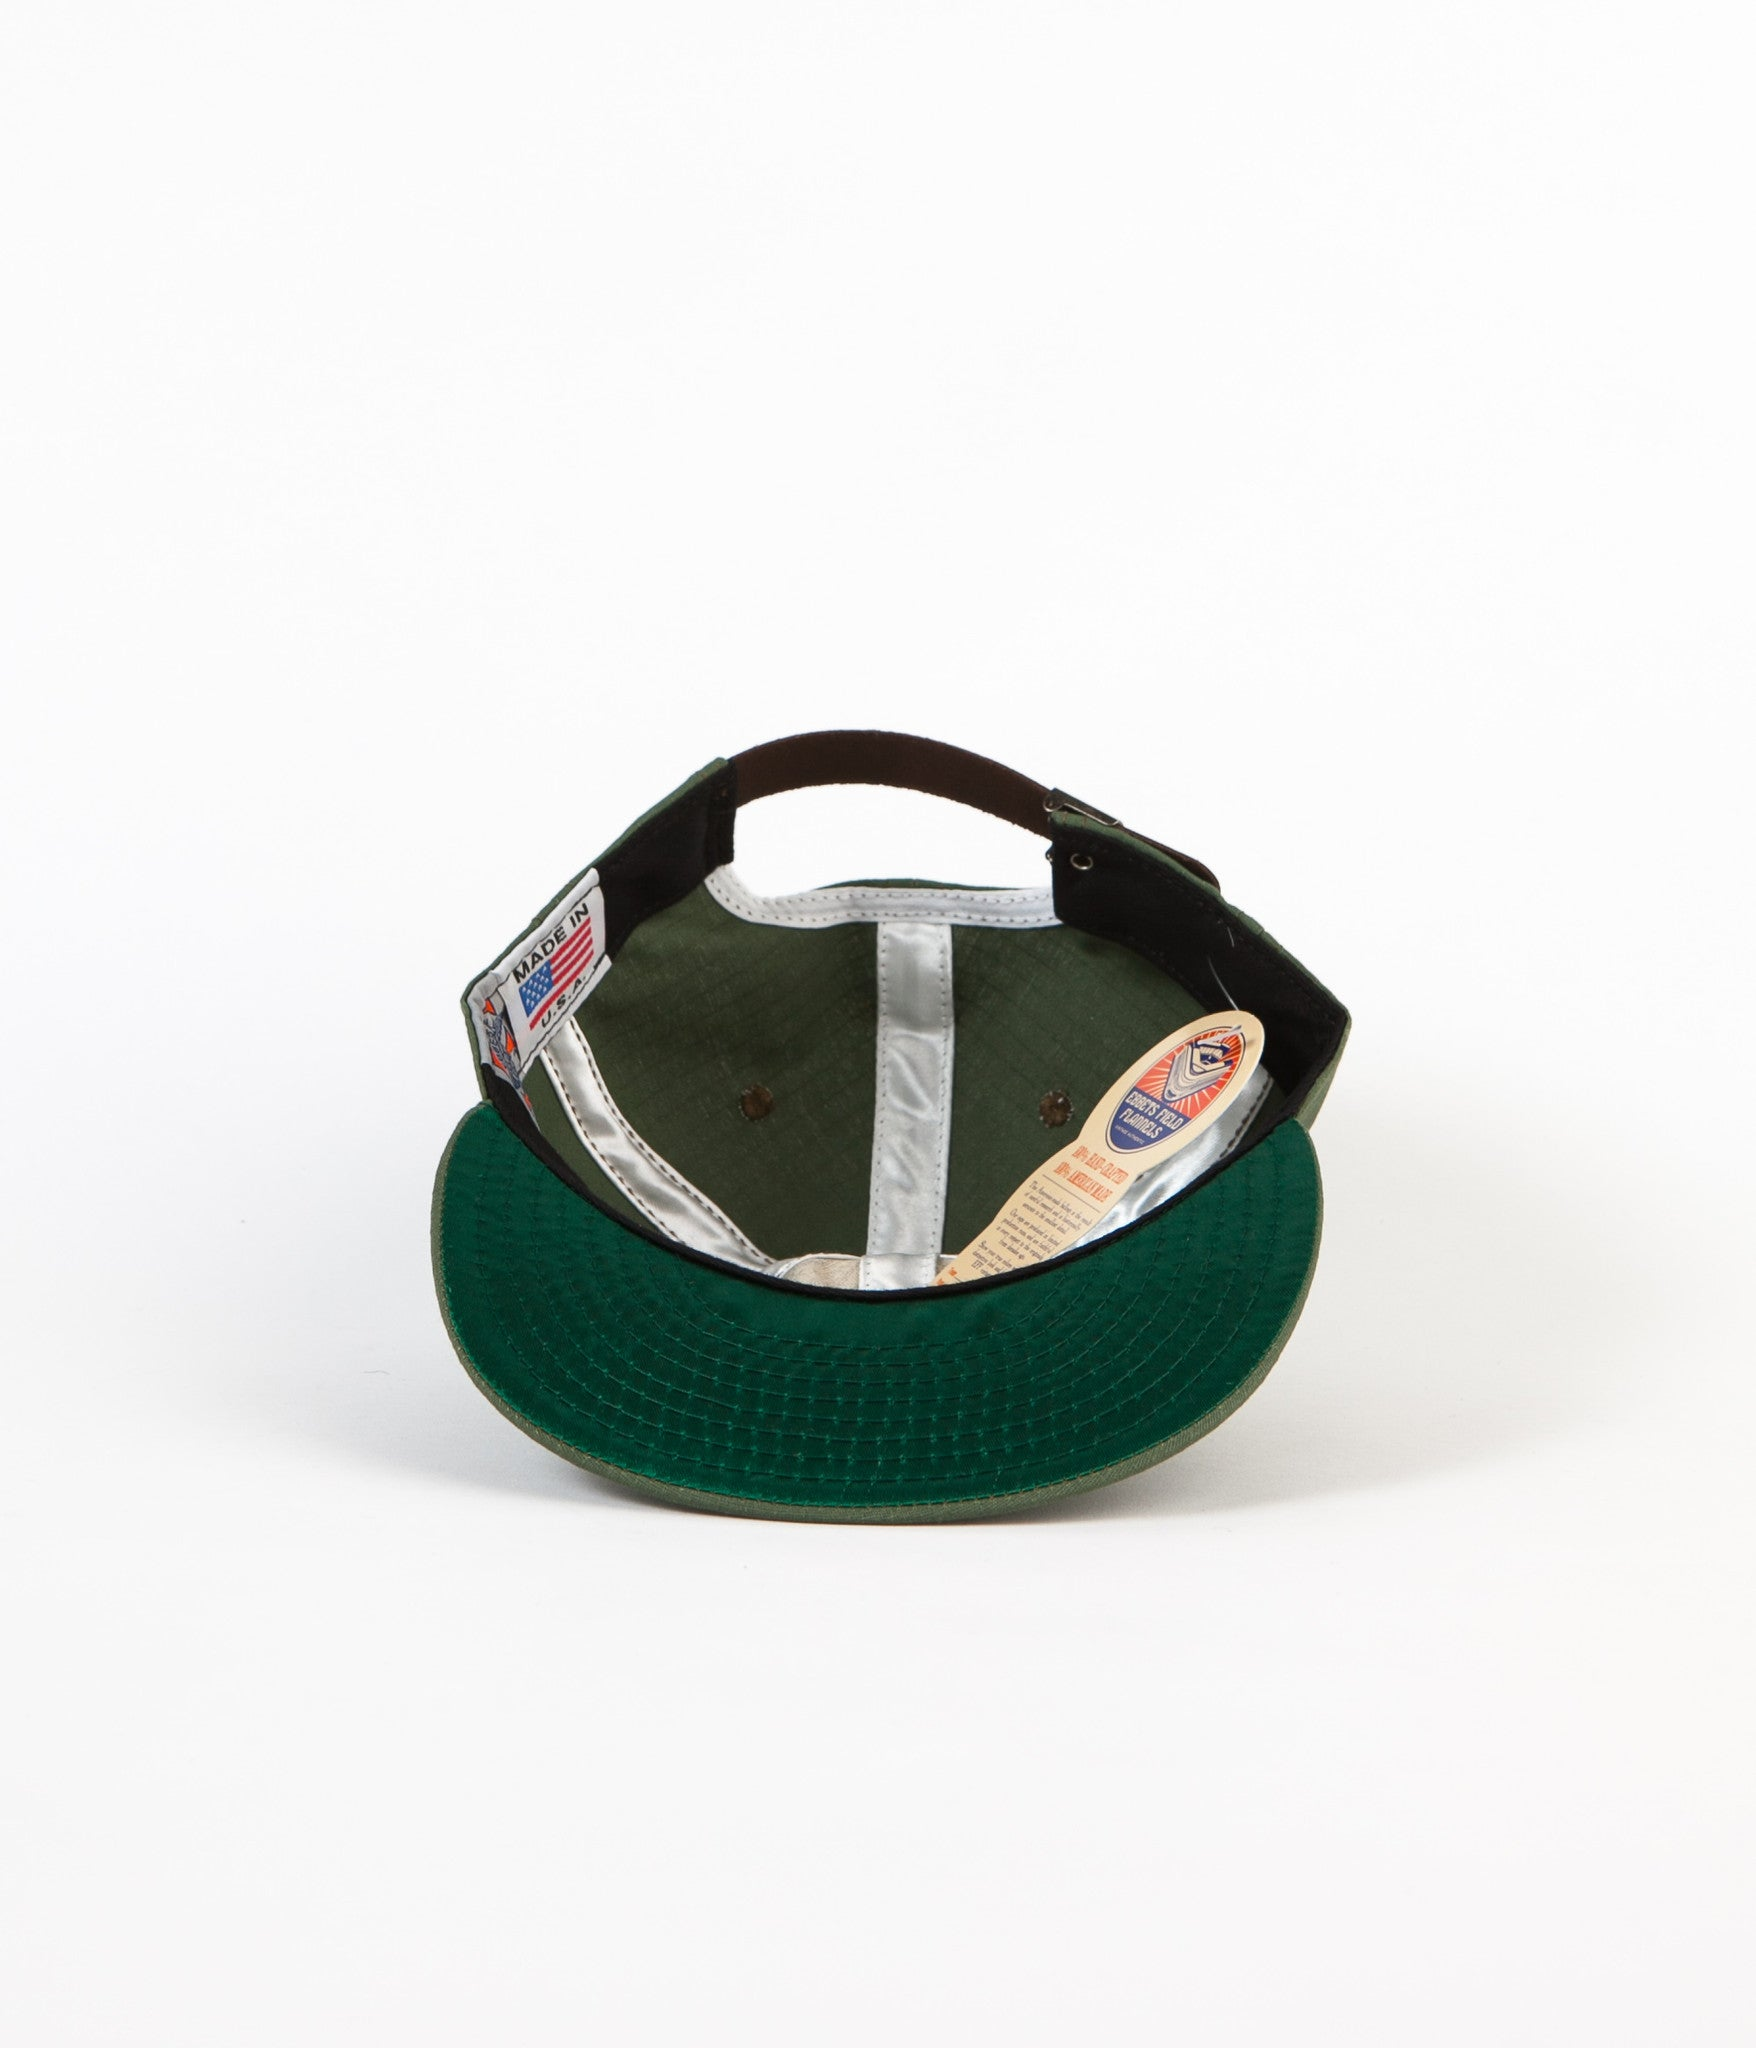 Ebbets Field Flannels Rip Stop Cap - Olive Drab